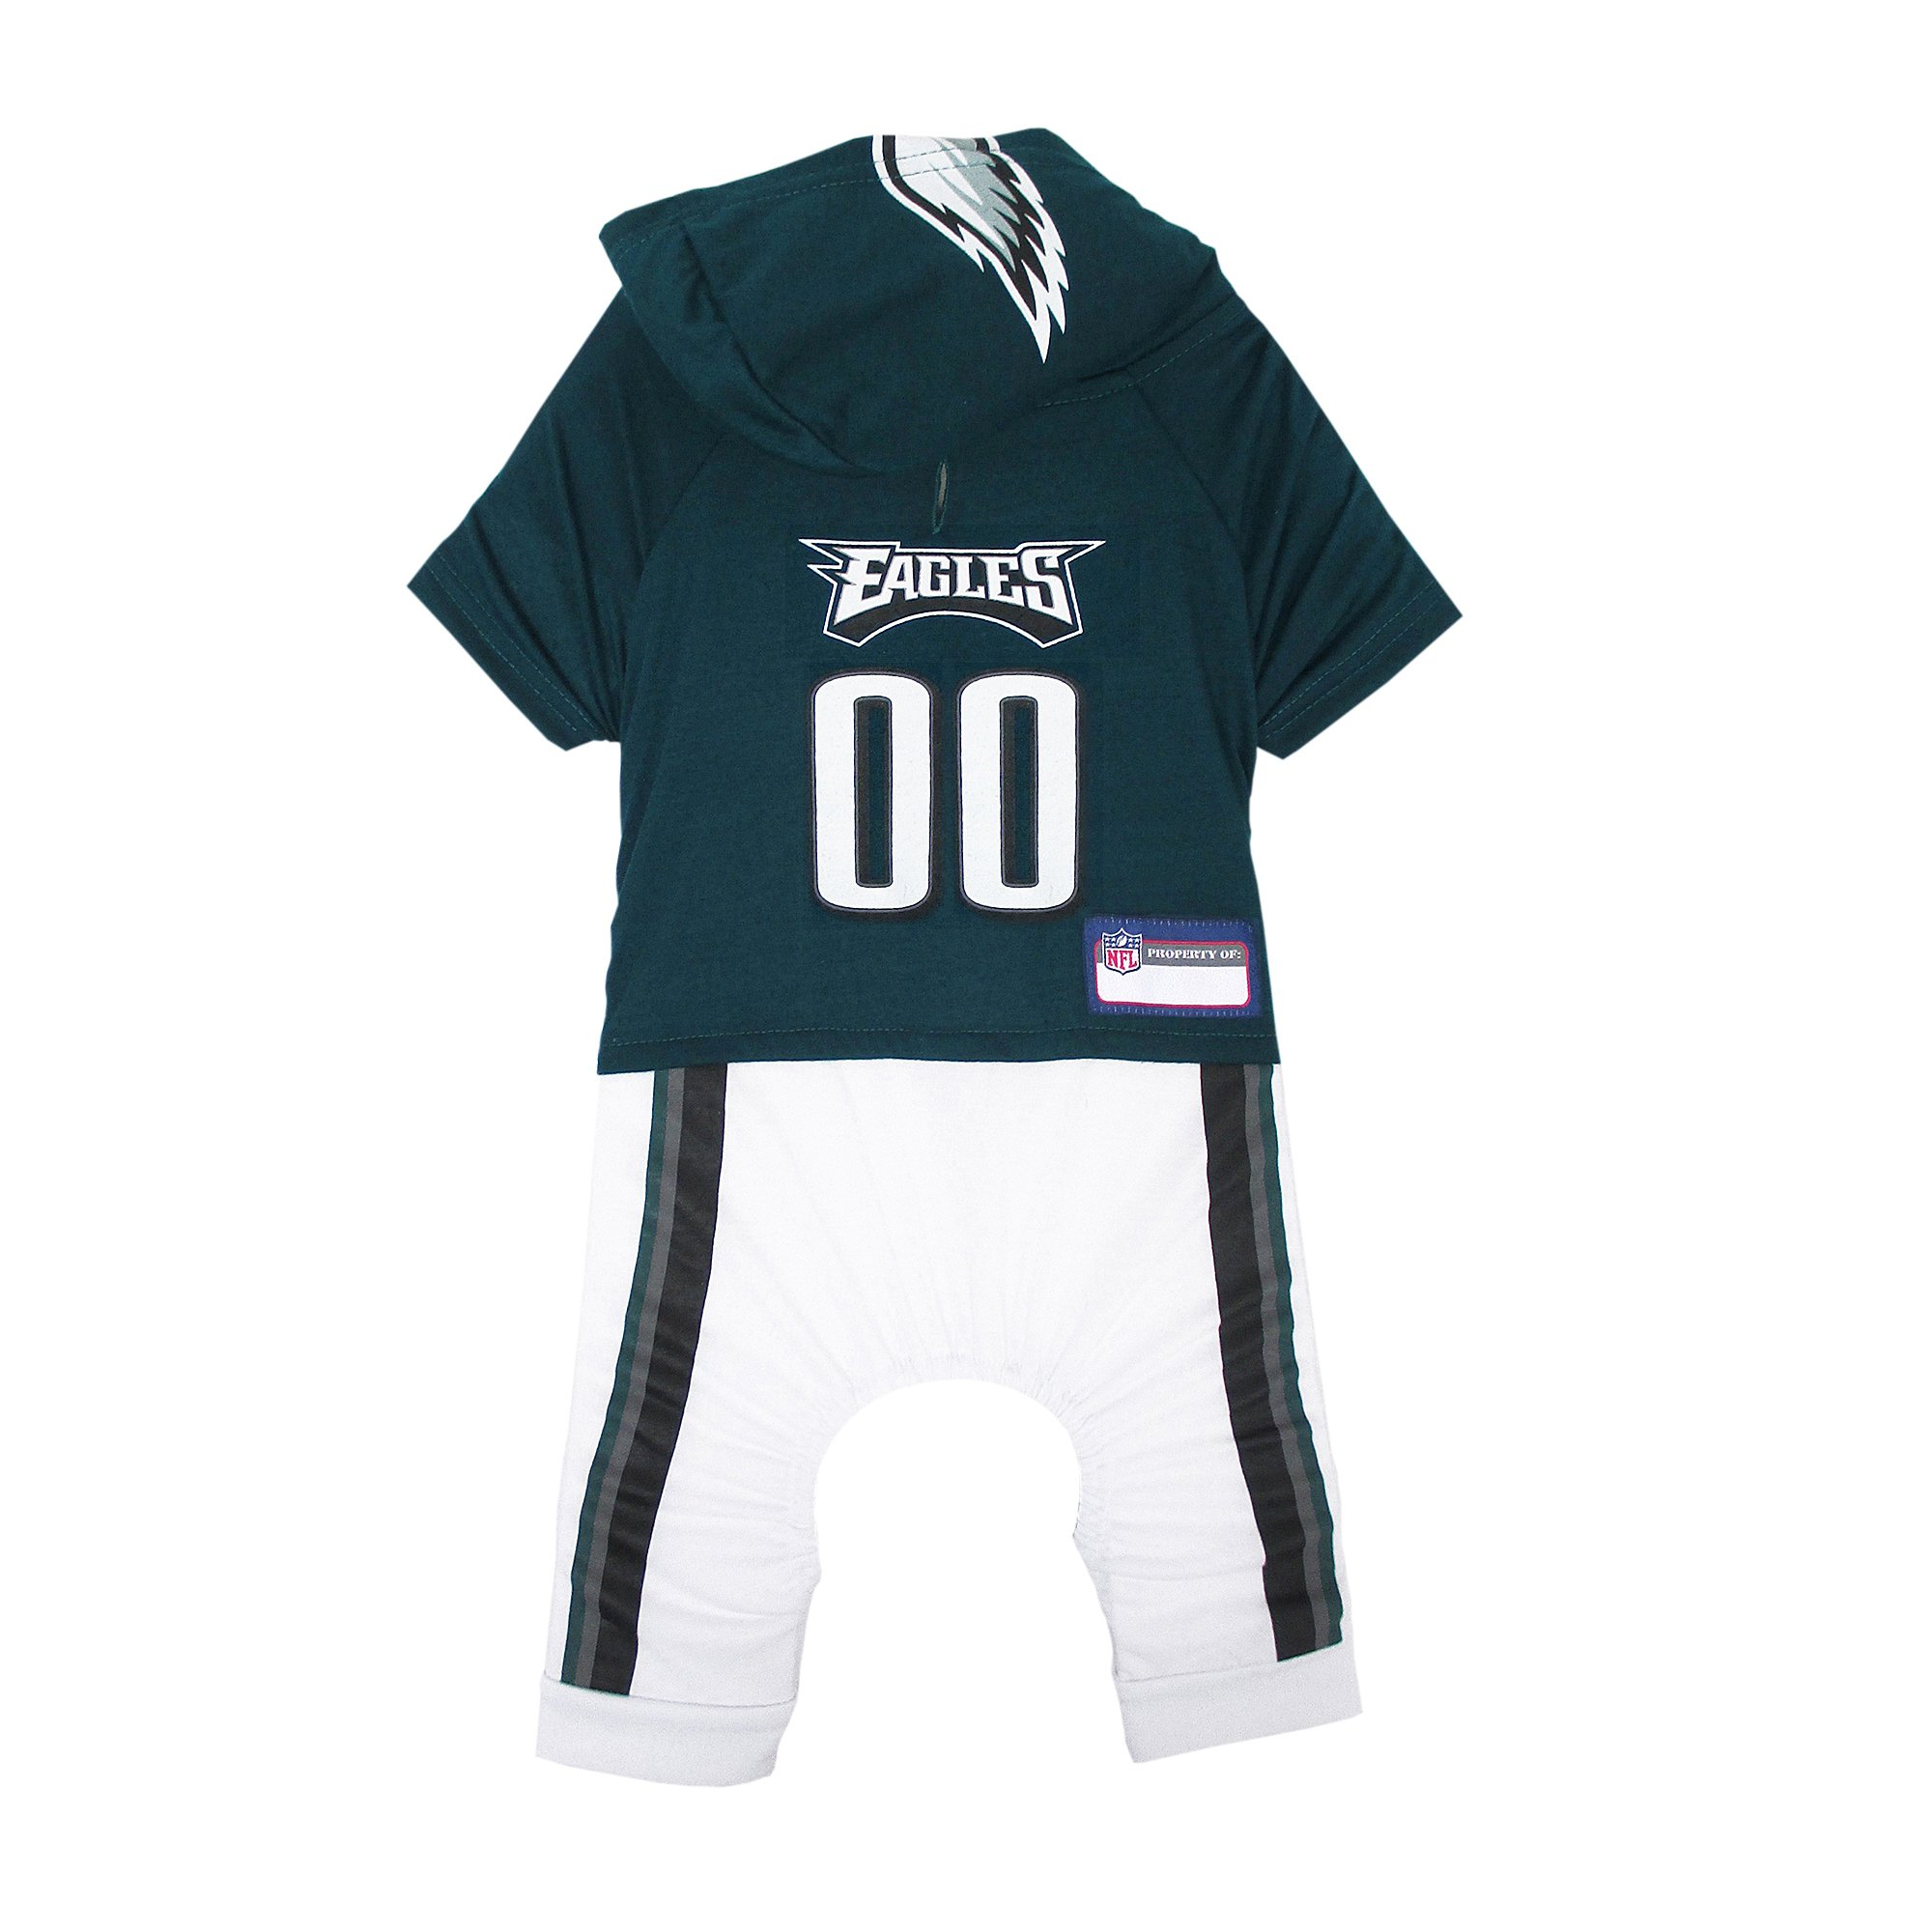 8f84bc04ae1 Pets First Philadelphia Eagles Team Uniform Onesi for Dogs | Petco